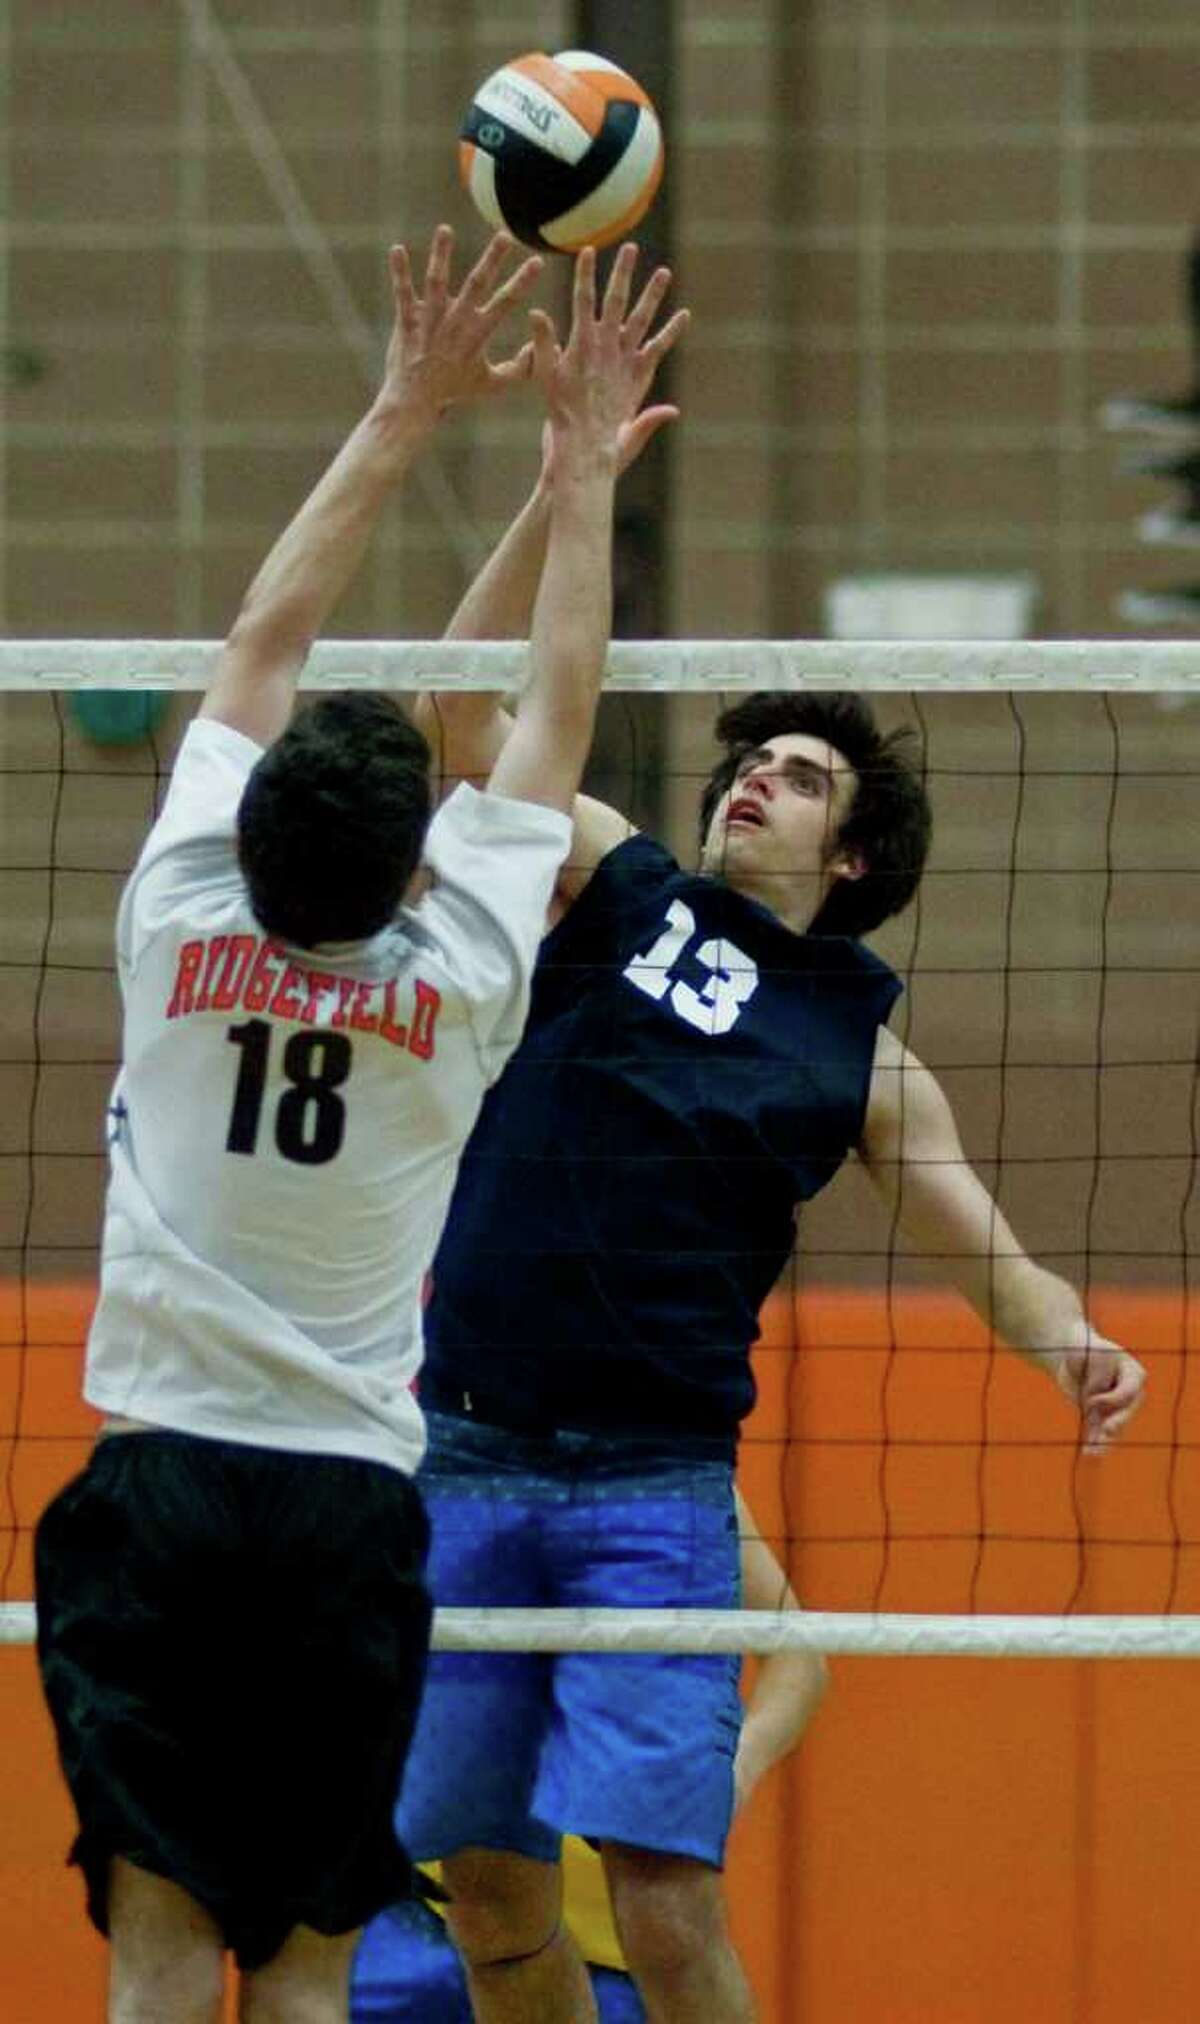 Ridgefield's Alex Gasdia tries to block a shot from Staples Jonah Aelyon during a game at Ridgefield High School. Wednesday, May 18, 2011